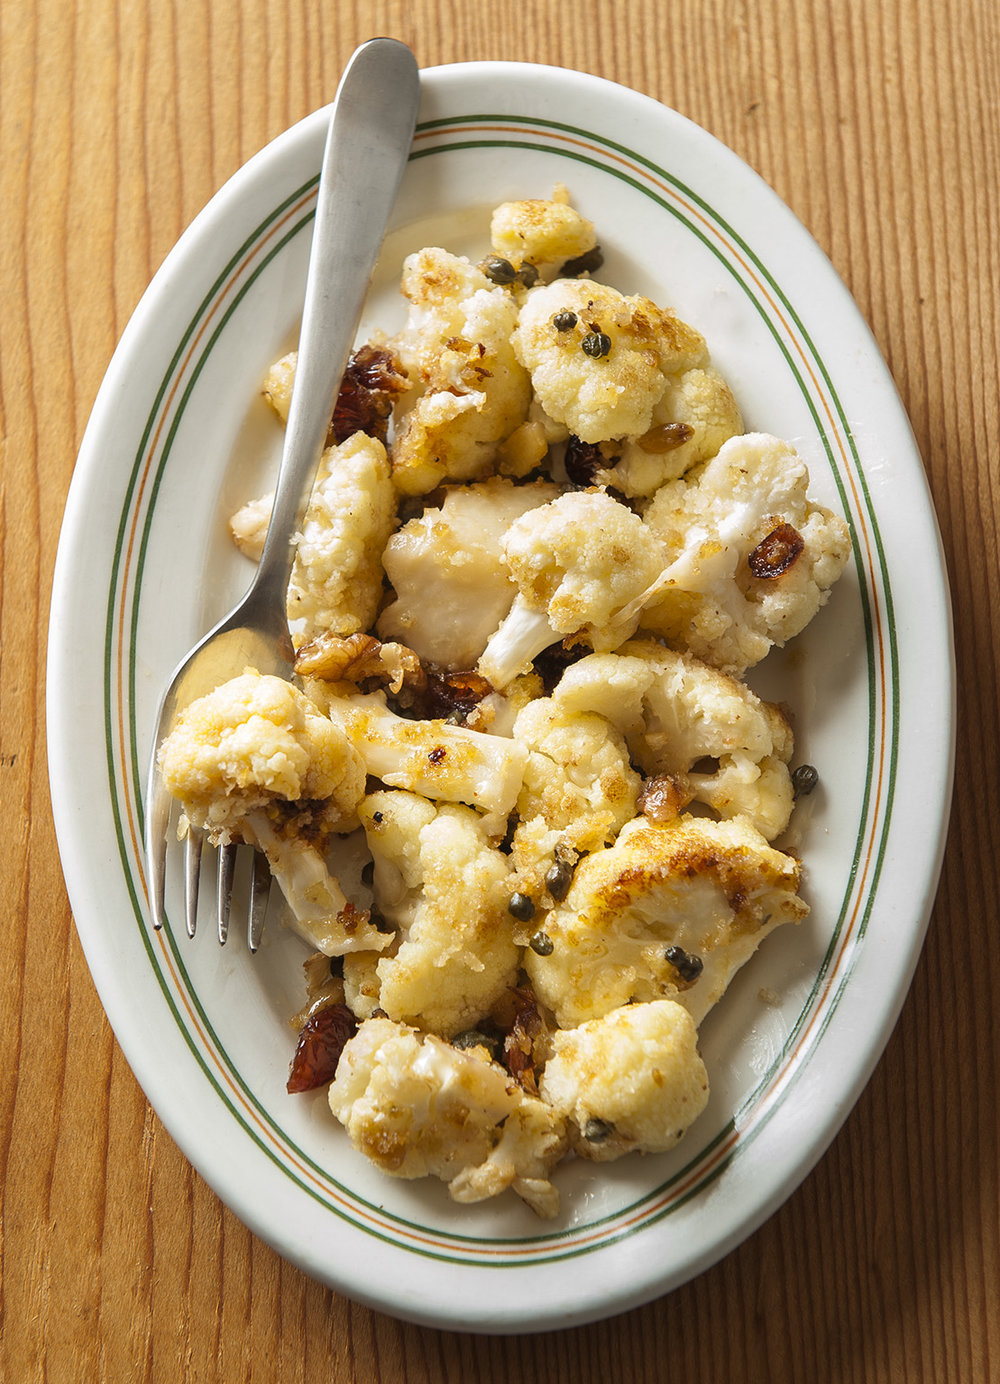 Pan Roasted Cauliflower photo by Mette Nielsen